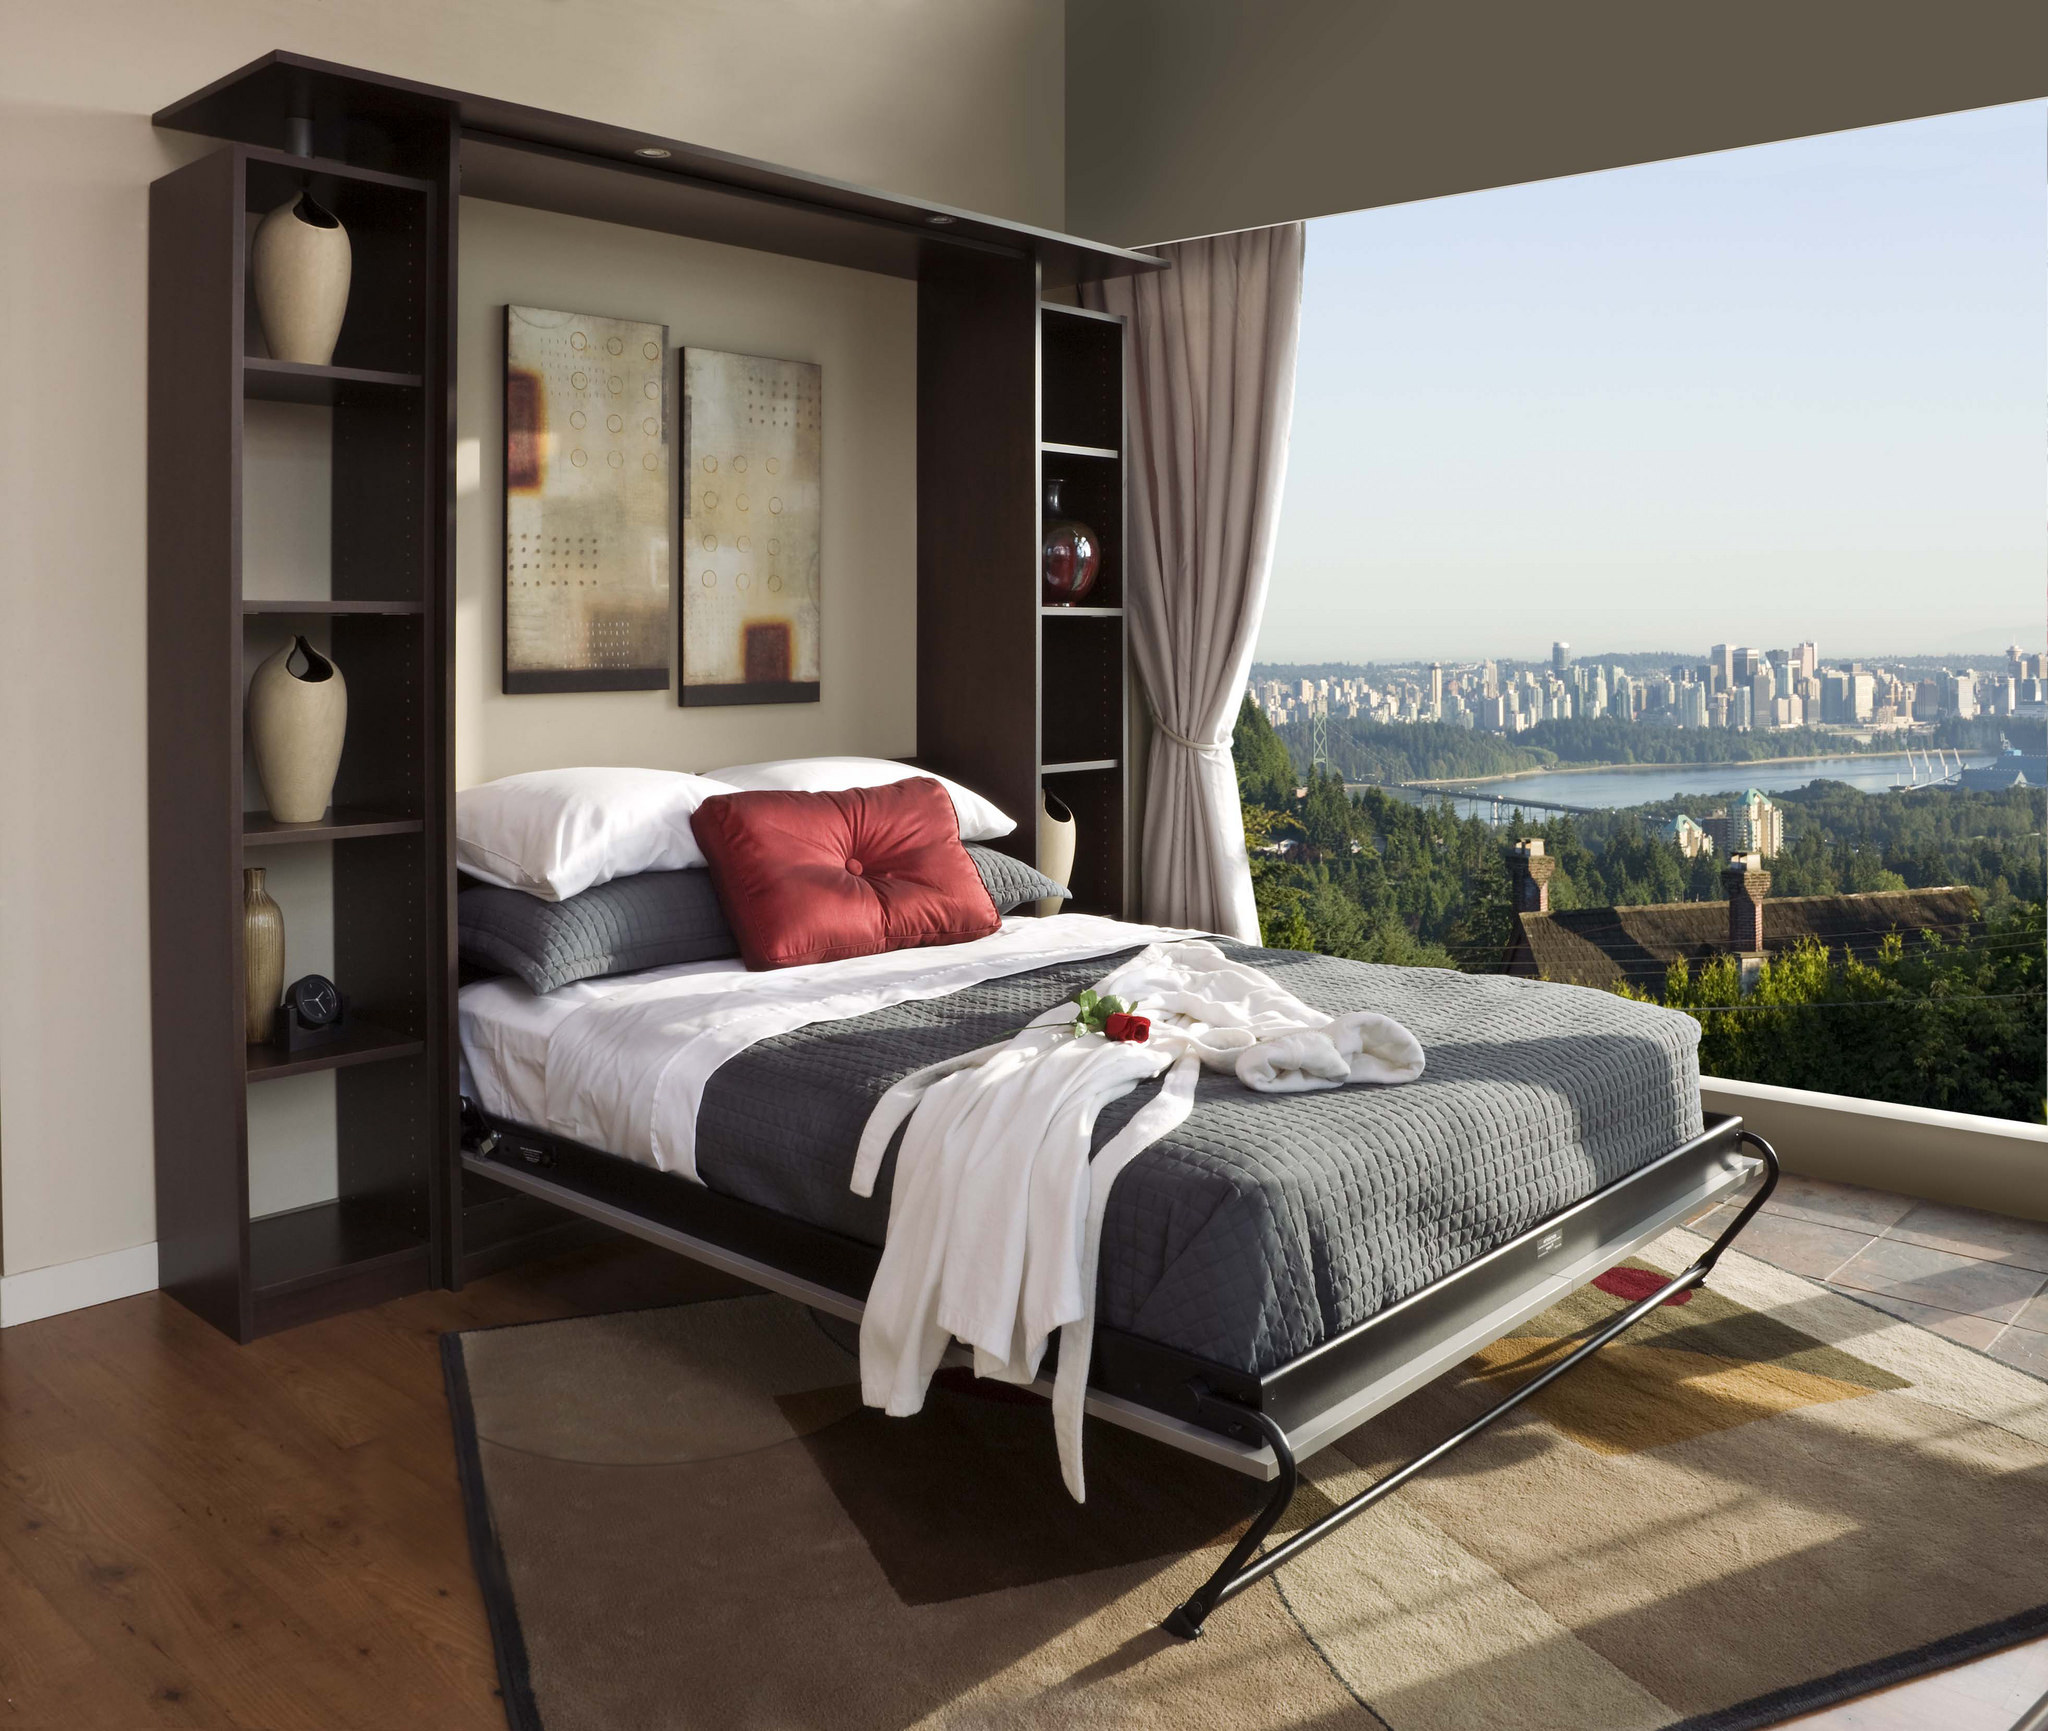 murphy bed in front of window view